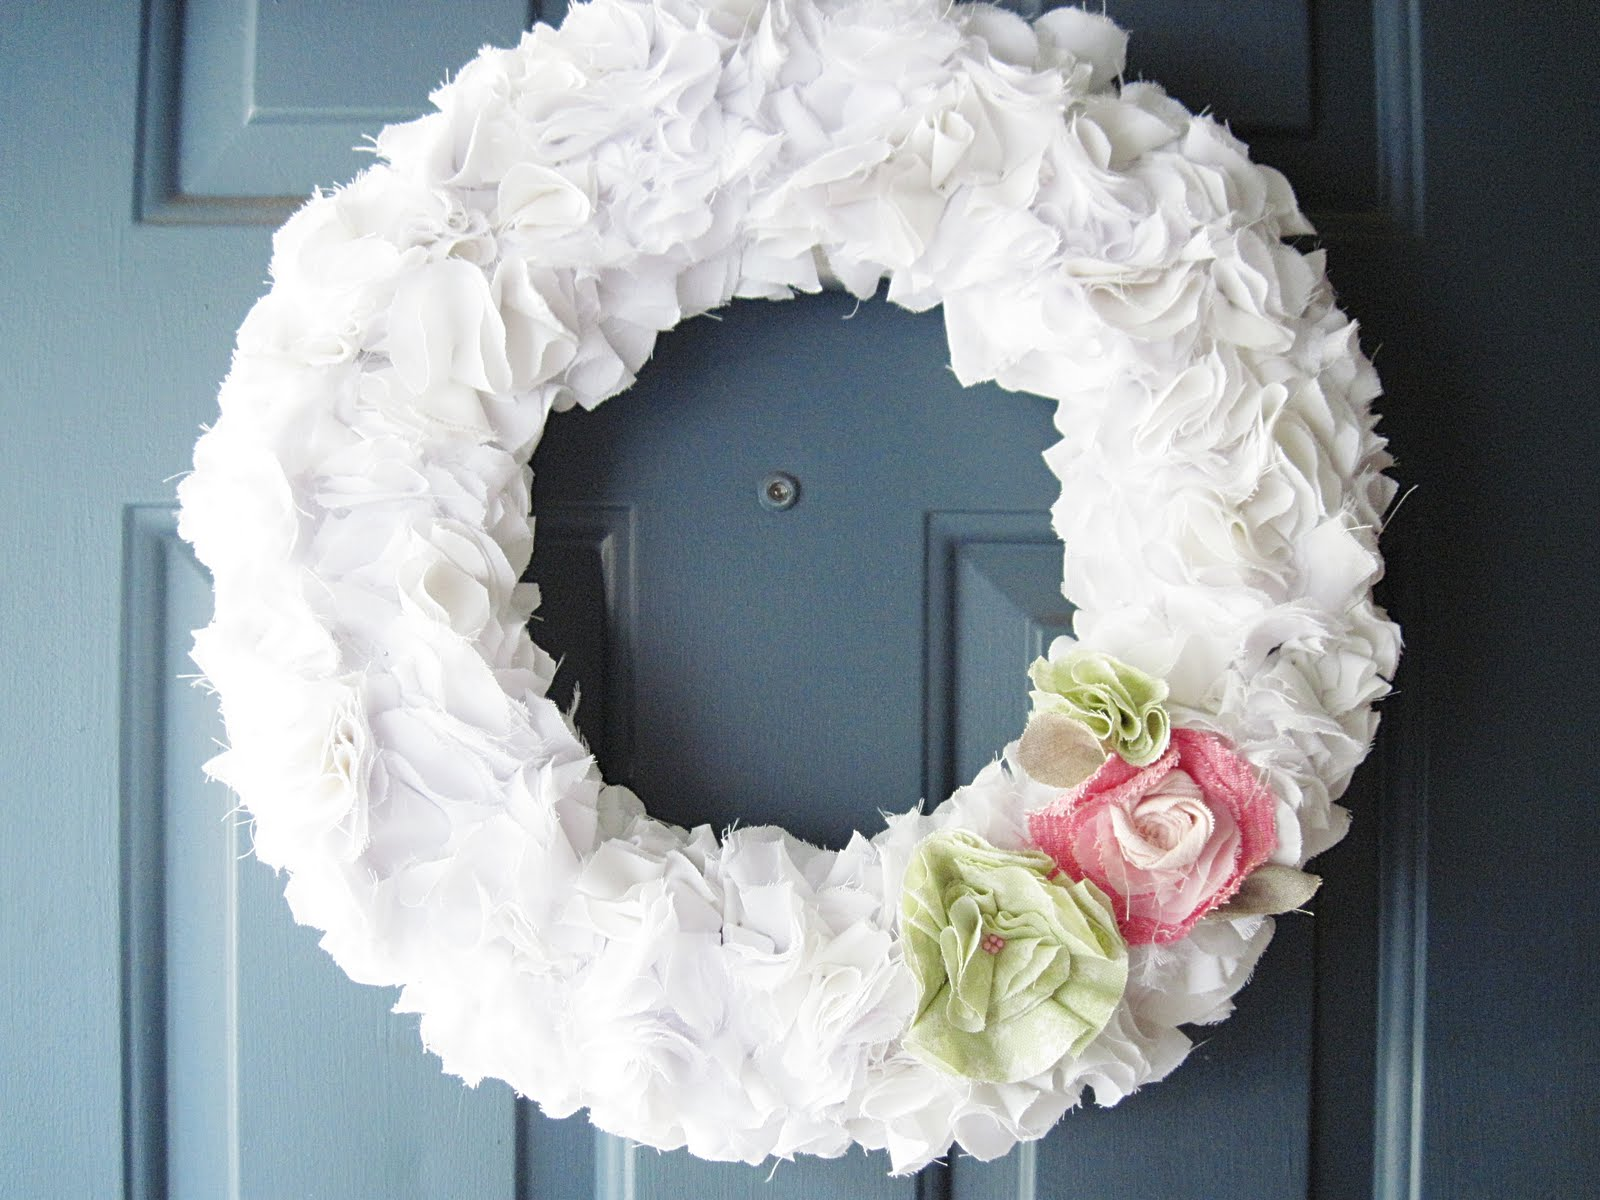 Two Shades Of Pink Ruffly White Wreath